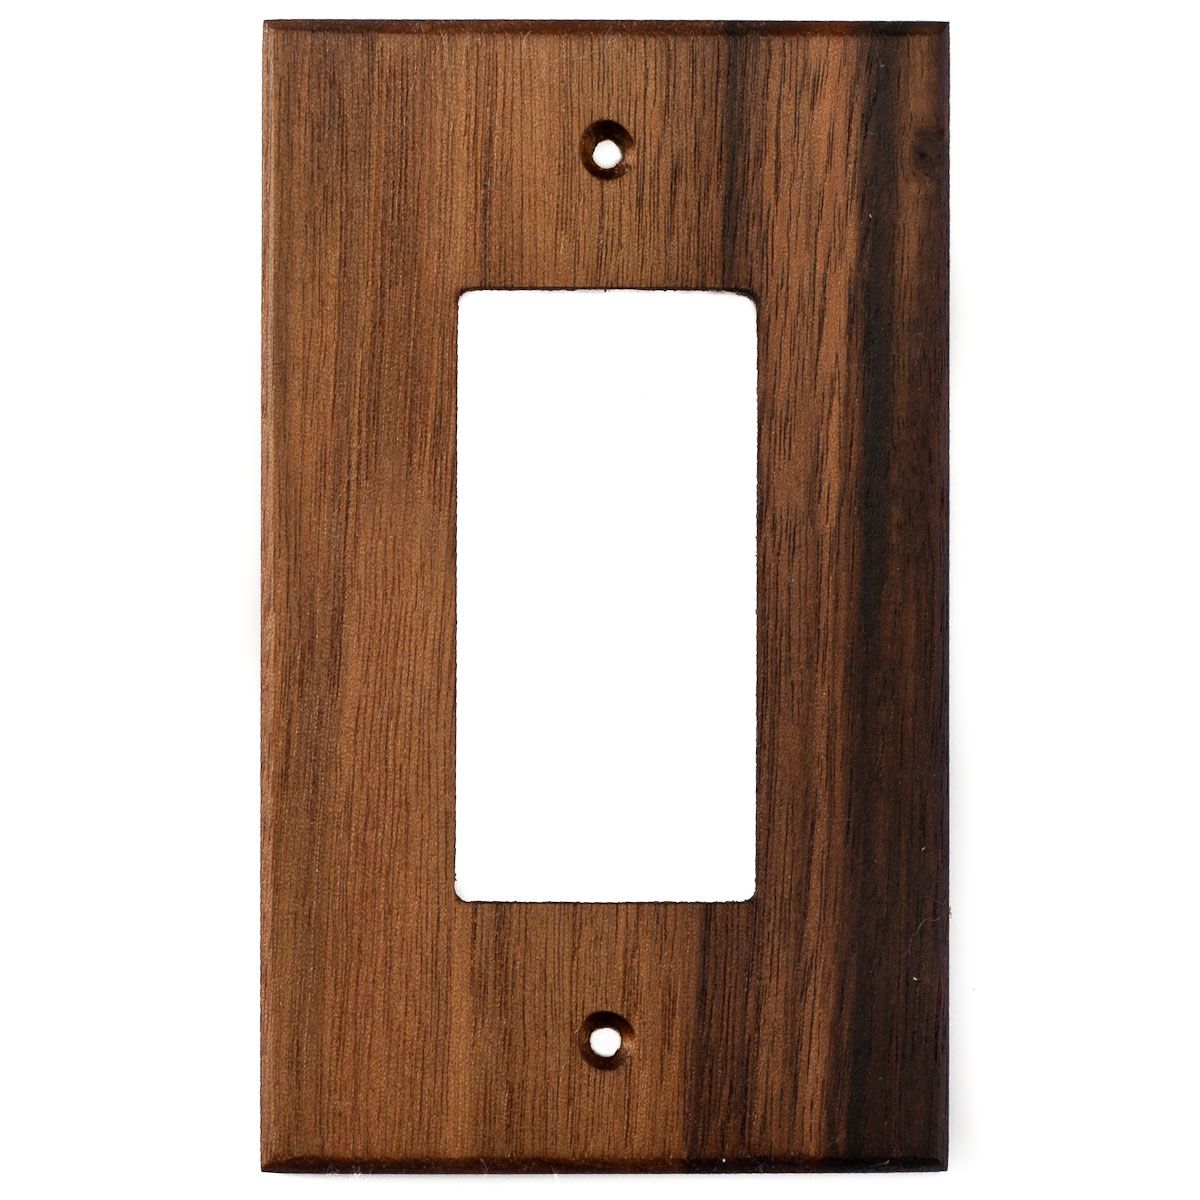 Oak Wood Wall Plate 1 Gang Duplex Outlet Cover Plates On Wall Outlet Covers Wood Wall